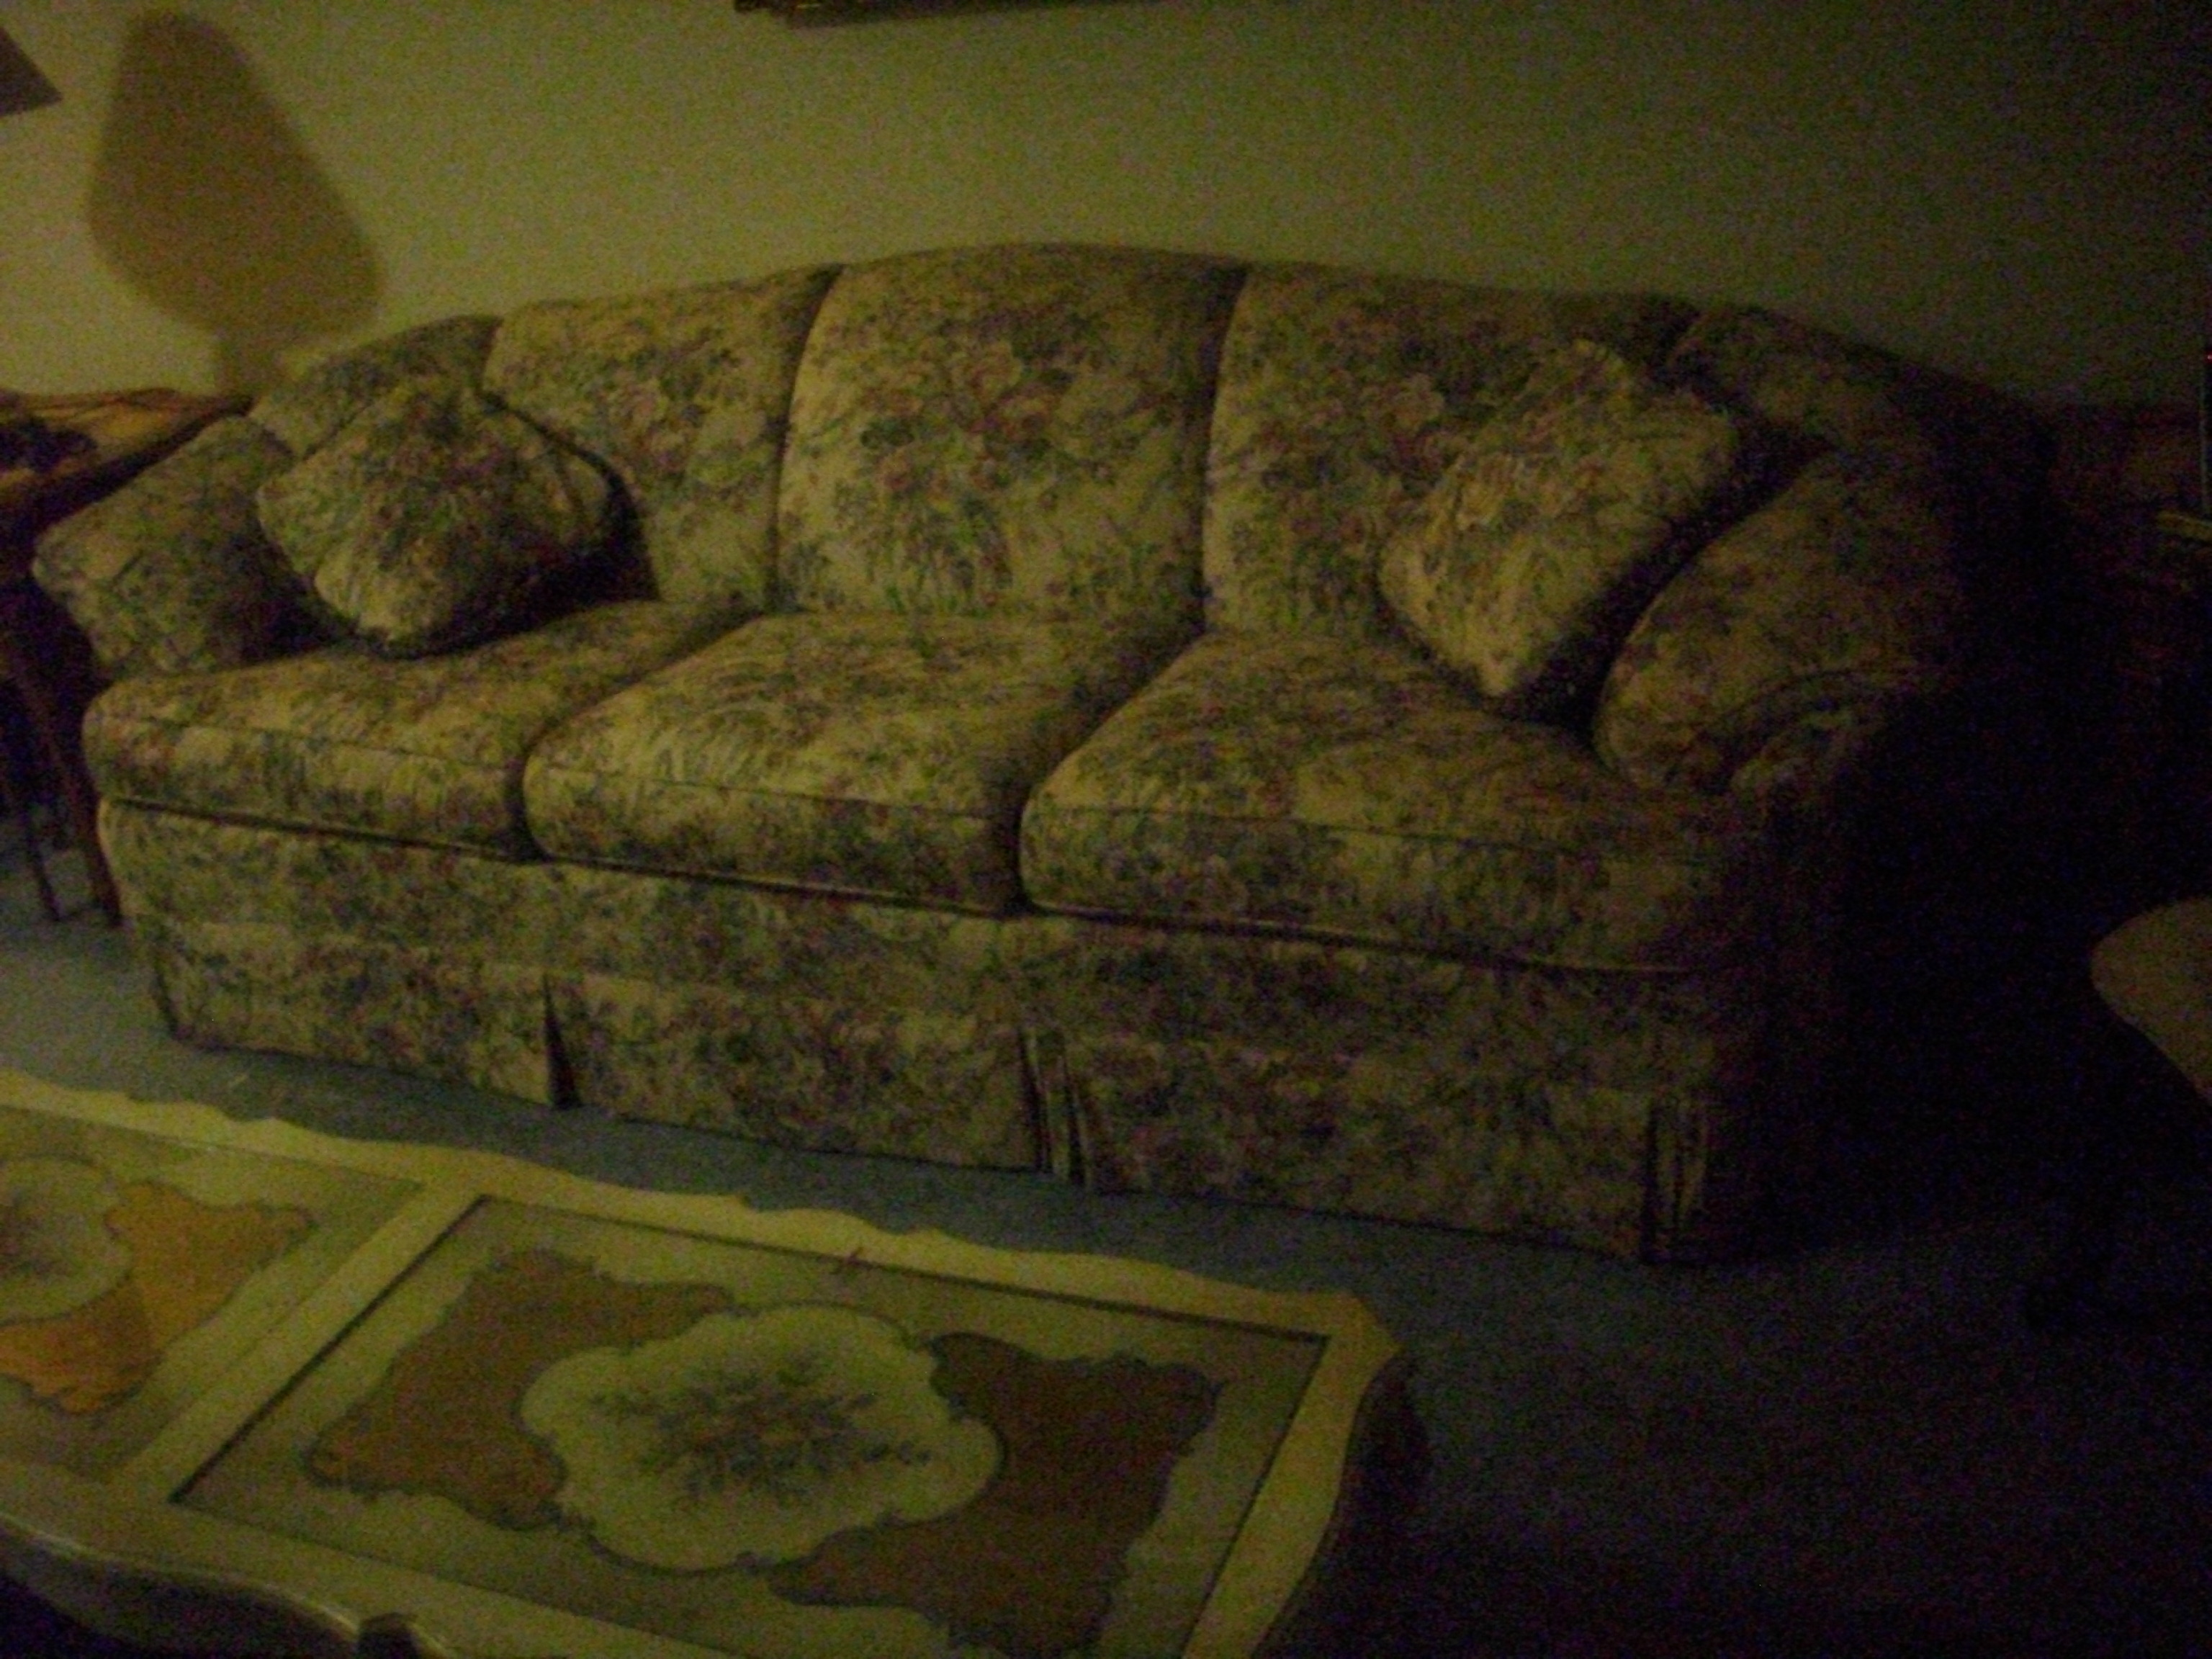 sectional sofas nyc showroom wittmann sofa vintage circa late1940 39s mint condt 59 for